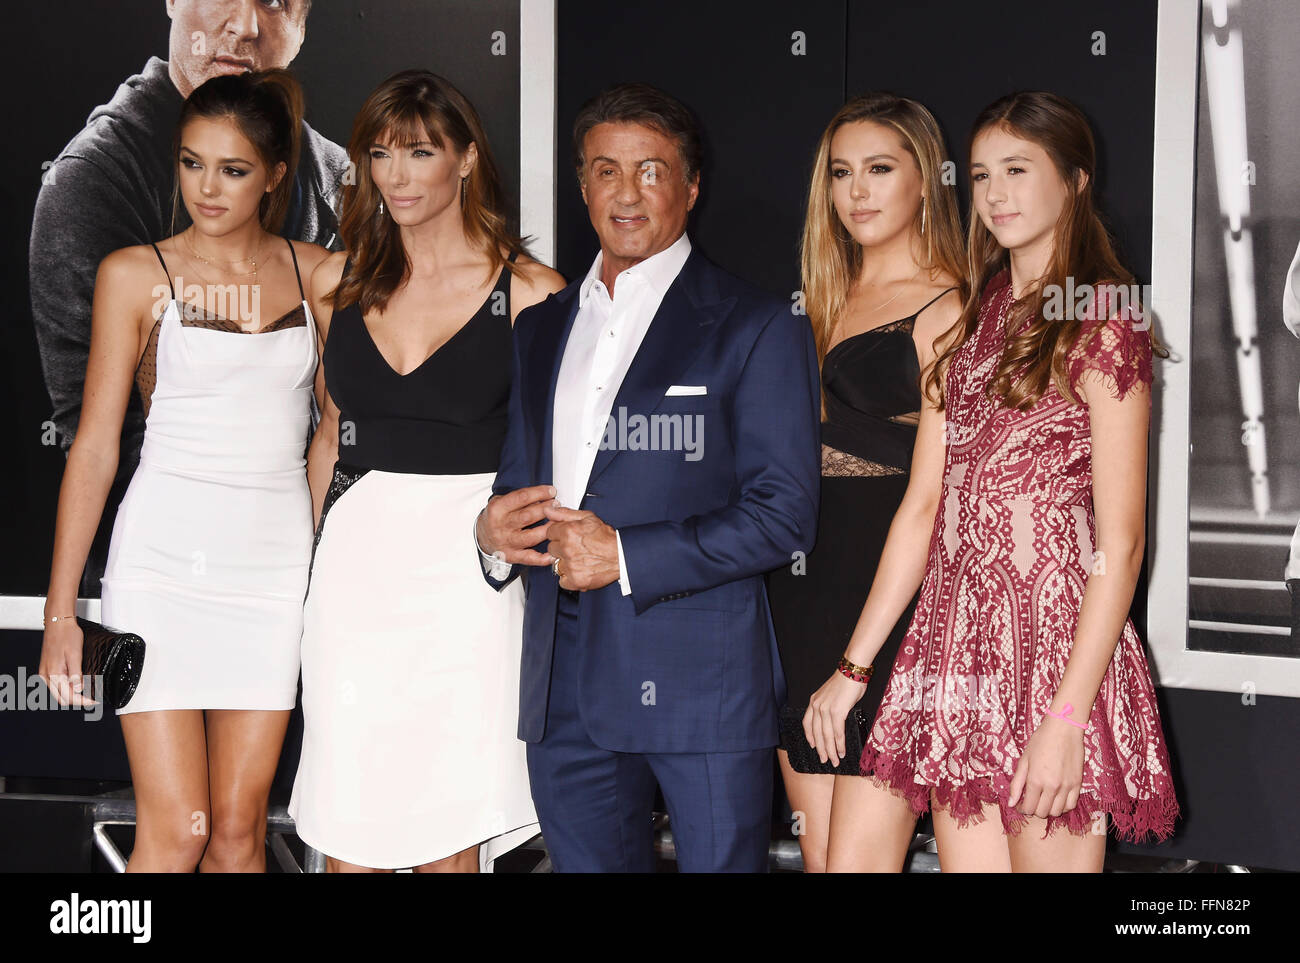 Family photo of the celebrity famous for Stallone Family.